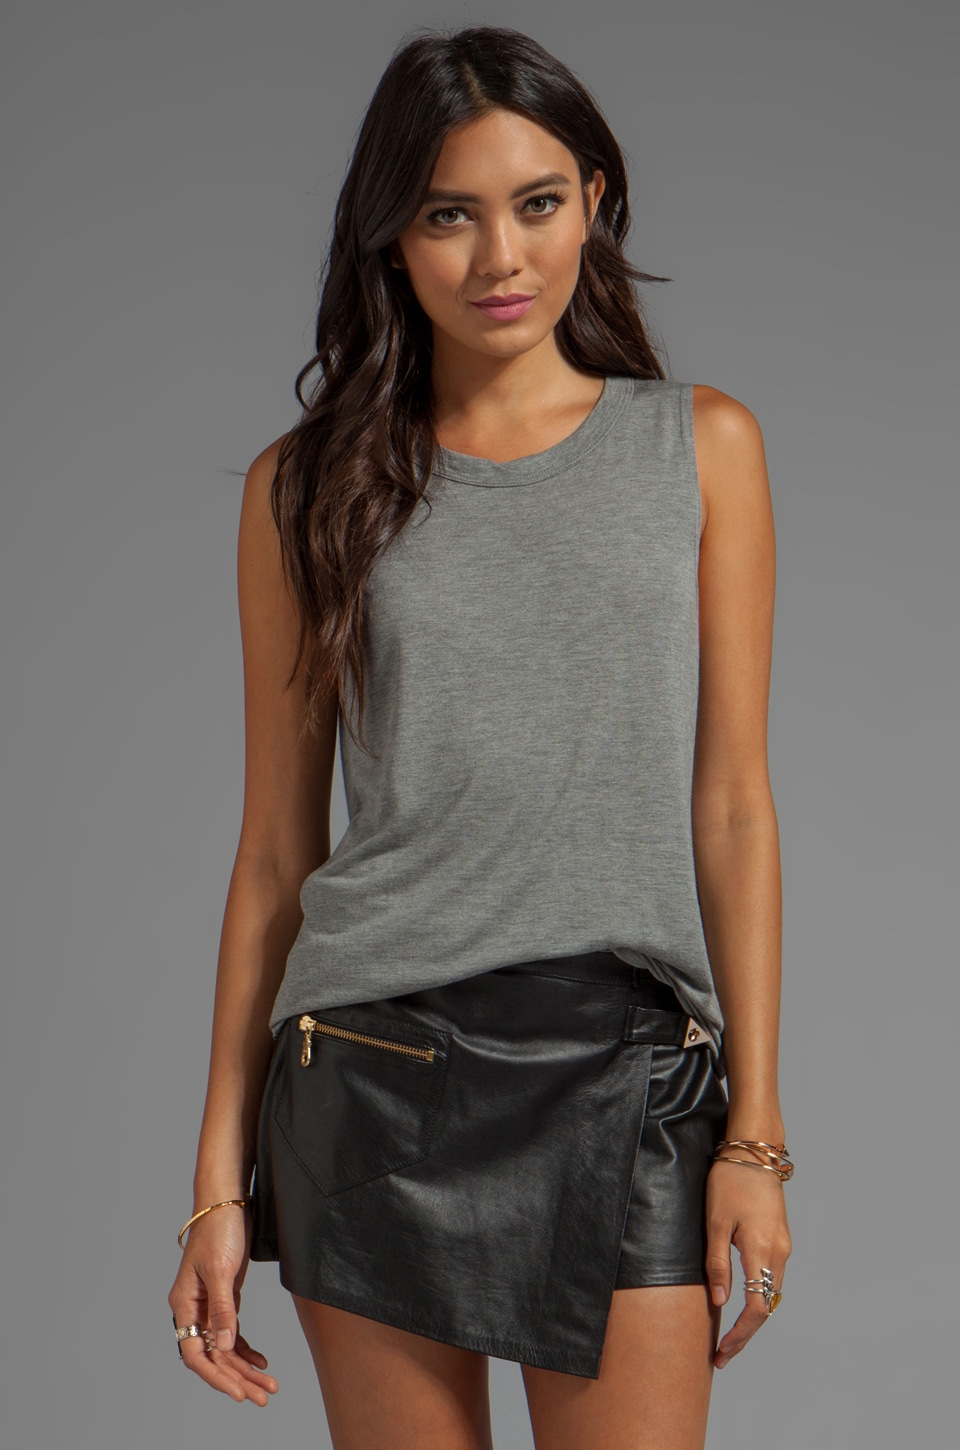 LNA Boyfriend Tank in Heather Grey